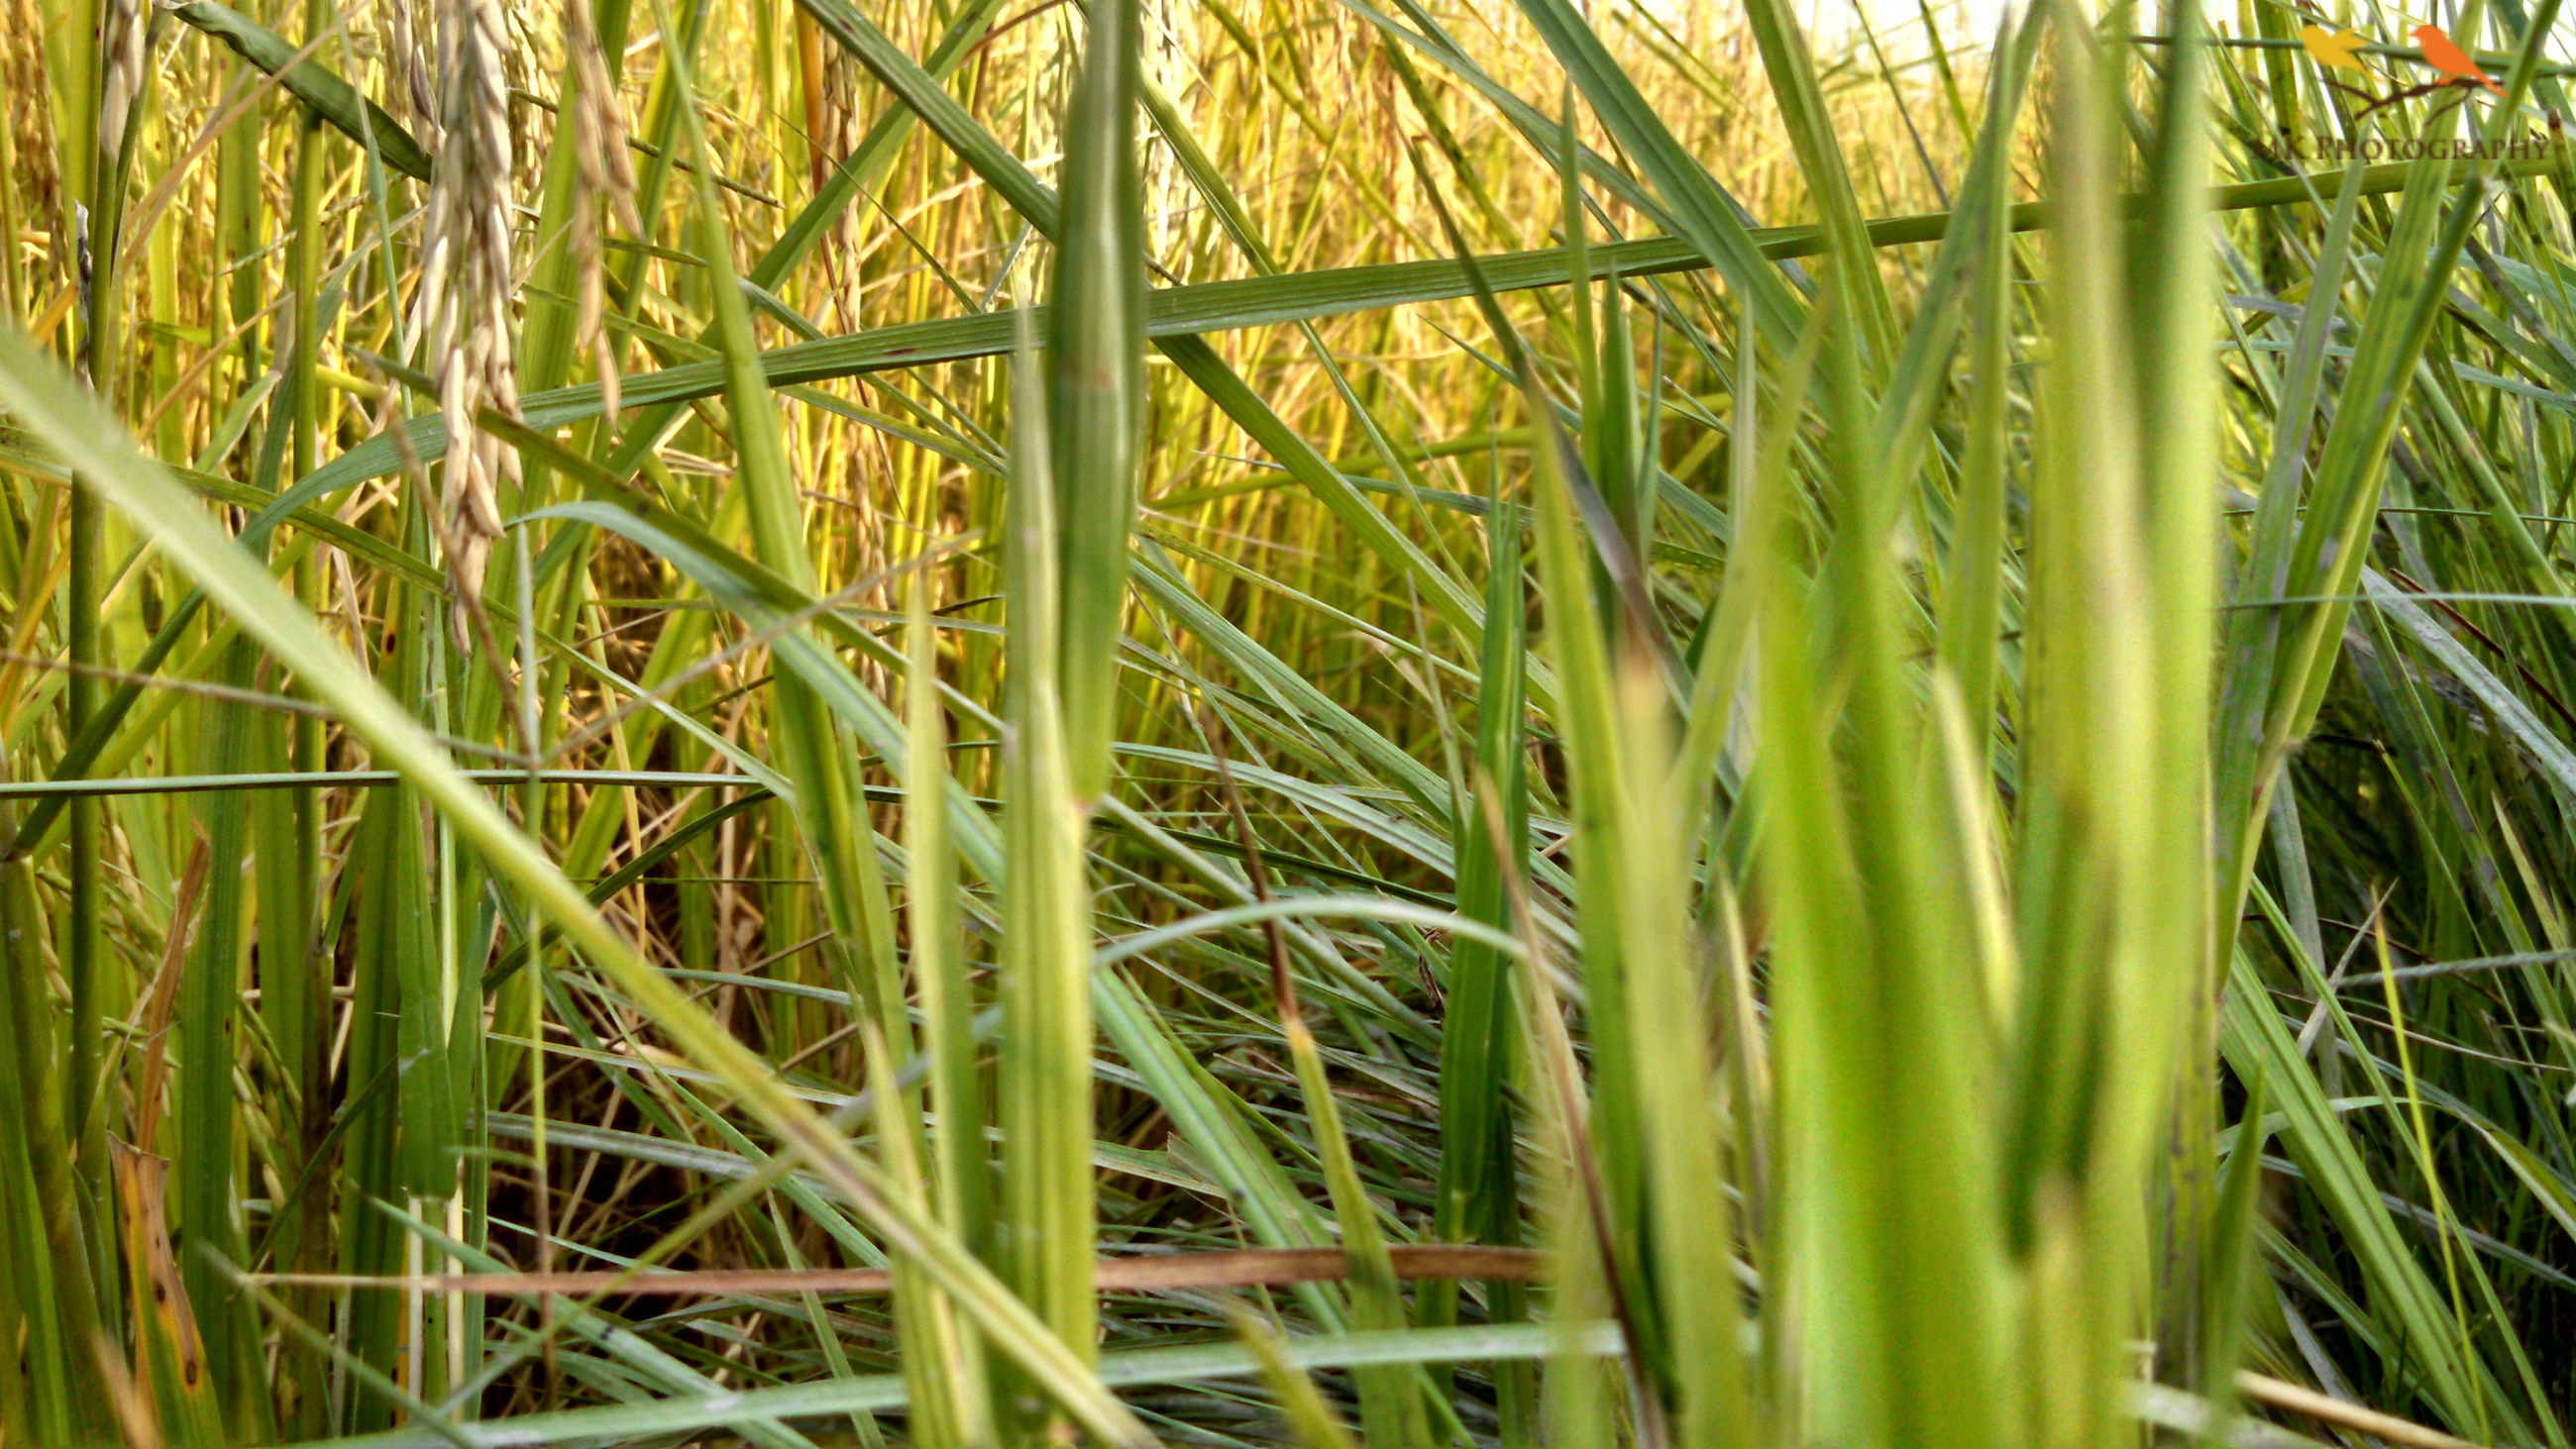 growth, plant, green color, close-up, grass, full frame, backgrounds, blade of grass, selective focus, nature, lush foliage, green, day, beauty in nature, outdoors, vibrant color, freshness, tranquility, scenics, botany, stalk, remote, growing, fragility